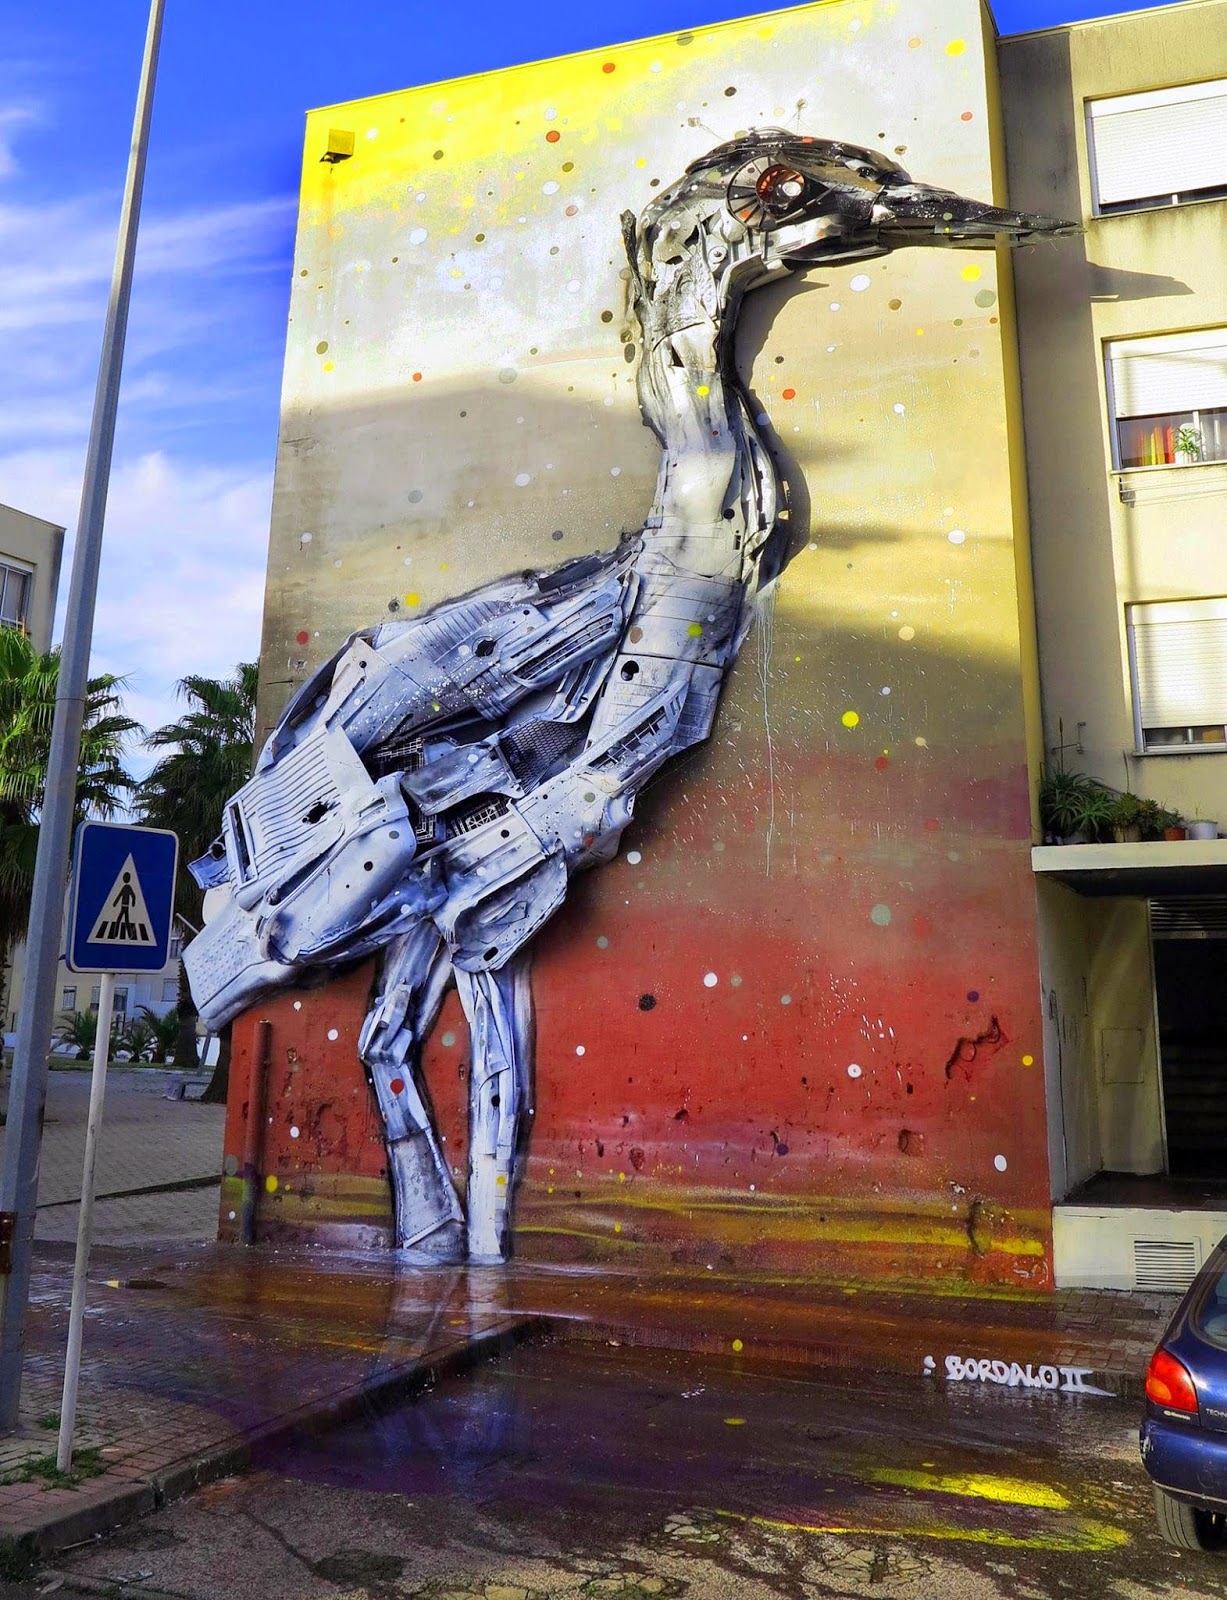 While we last heard from him a few days ago in Covilhã, Bordalo II is now in Loures, Portugal where he just finished working on this new street installation.